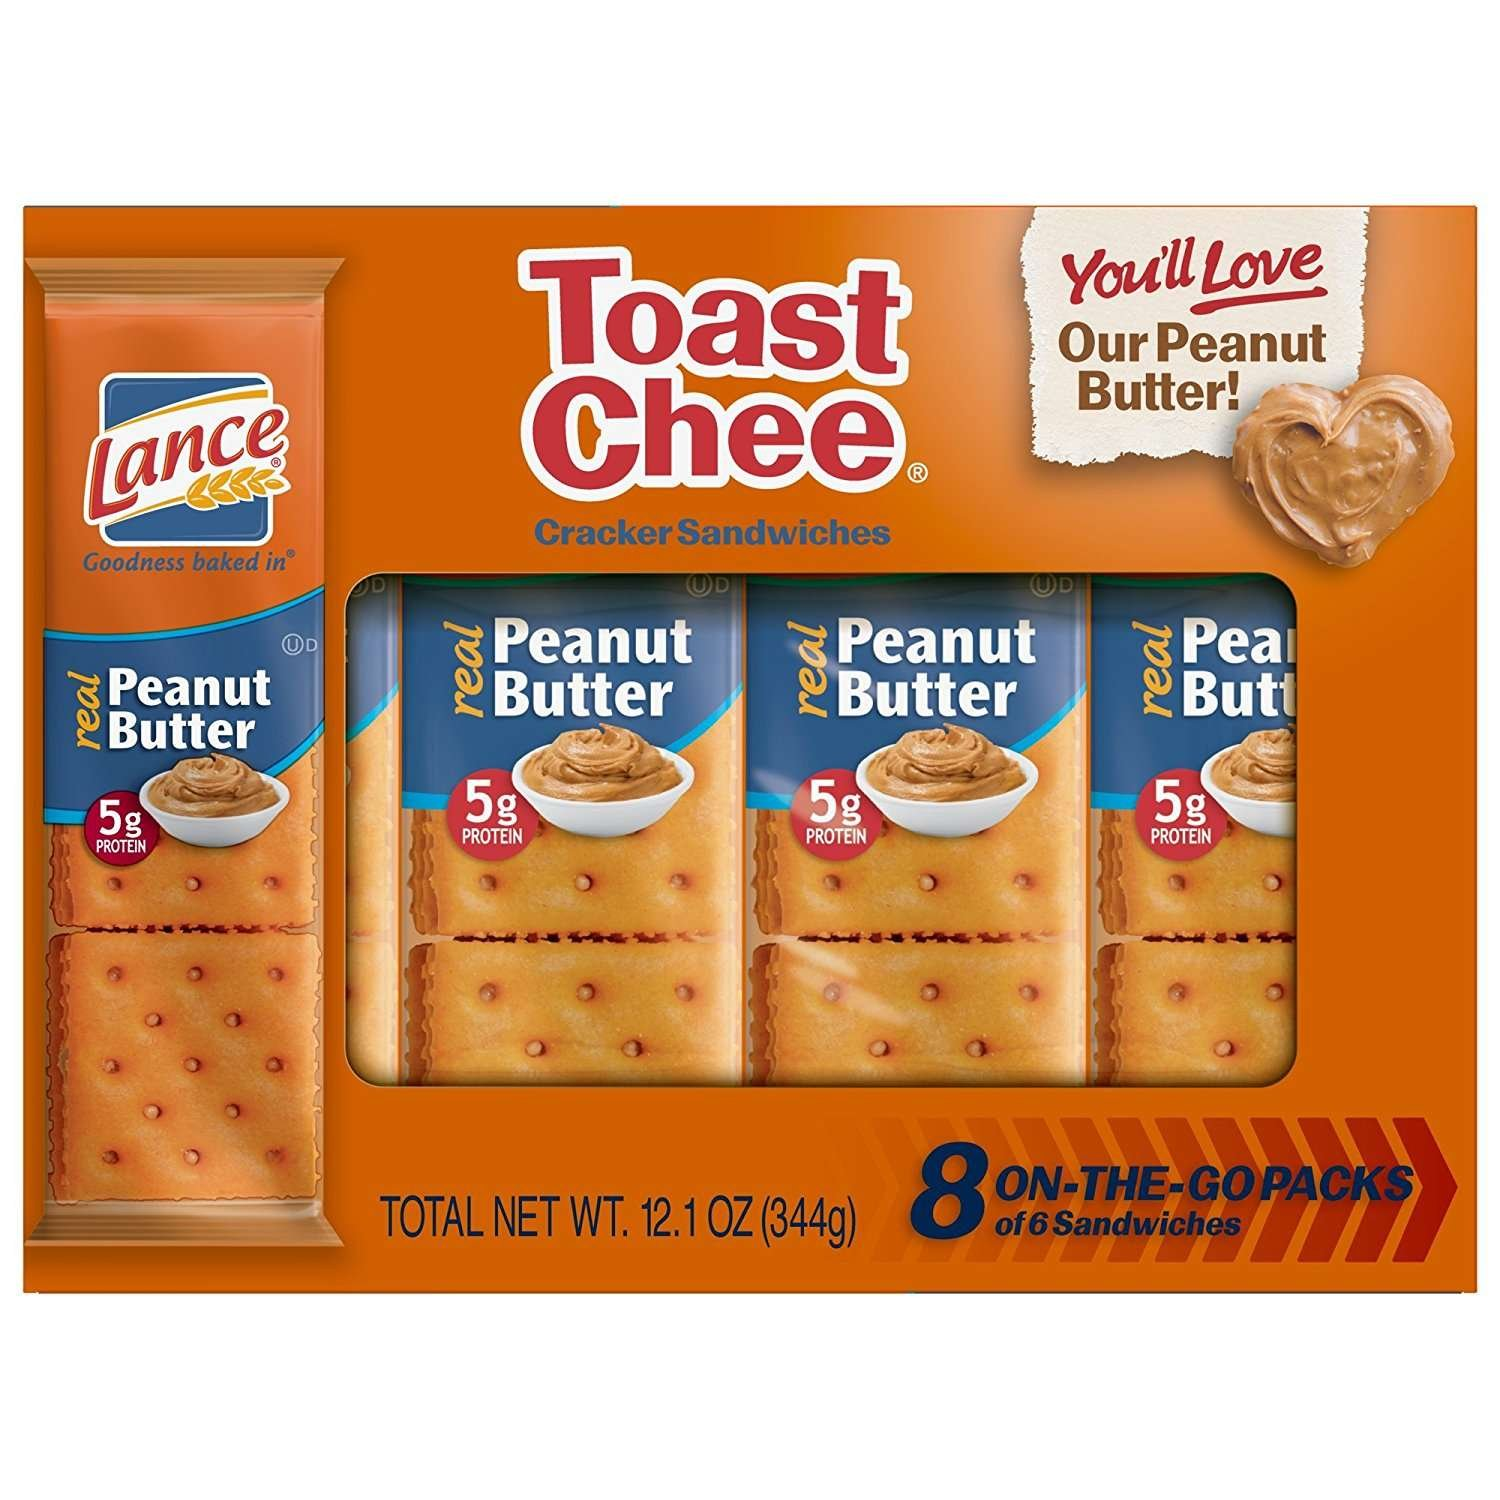 Lance Whole Grain Sandwich Crackers with Peanut Butter, 8 Count (Pack of 14) Snyders of Hanover 106949